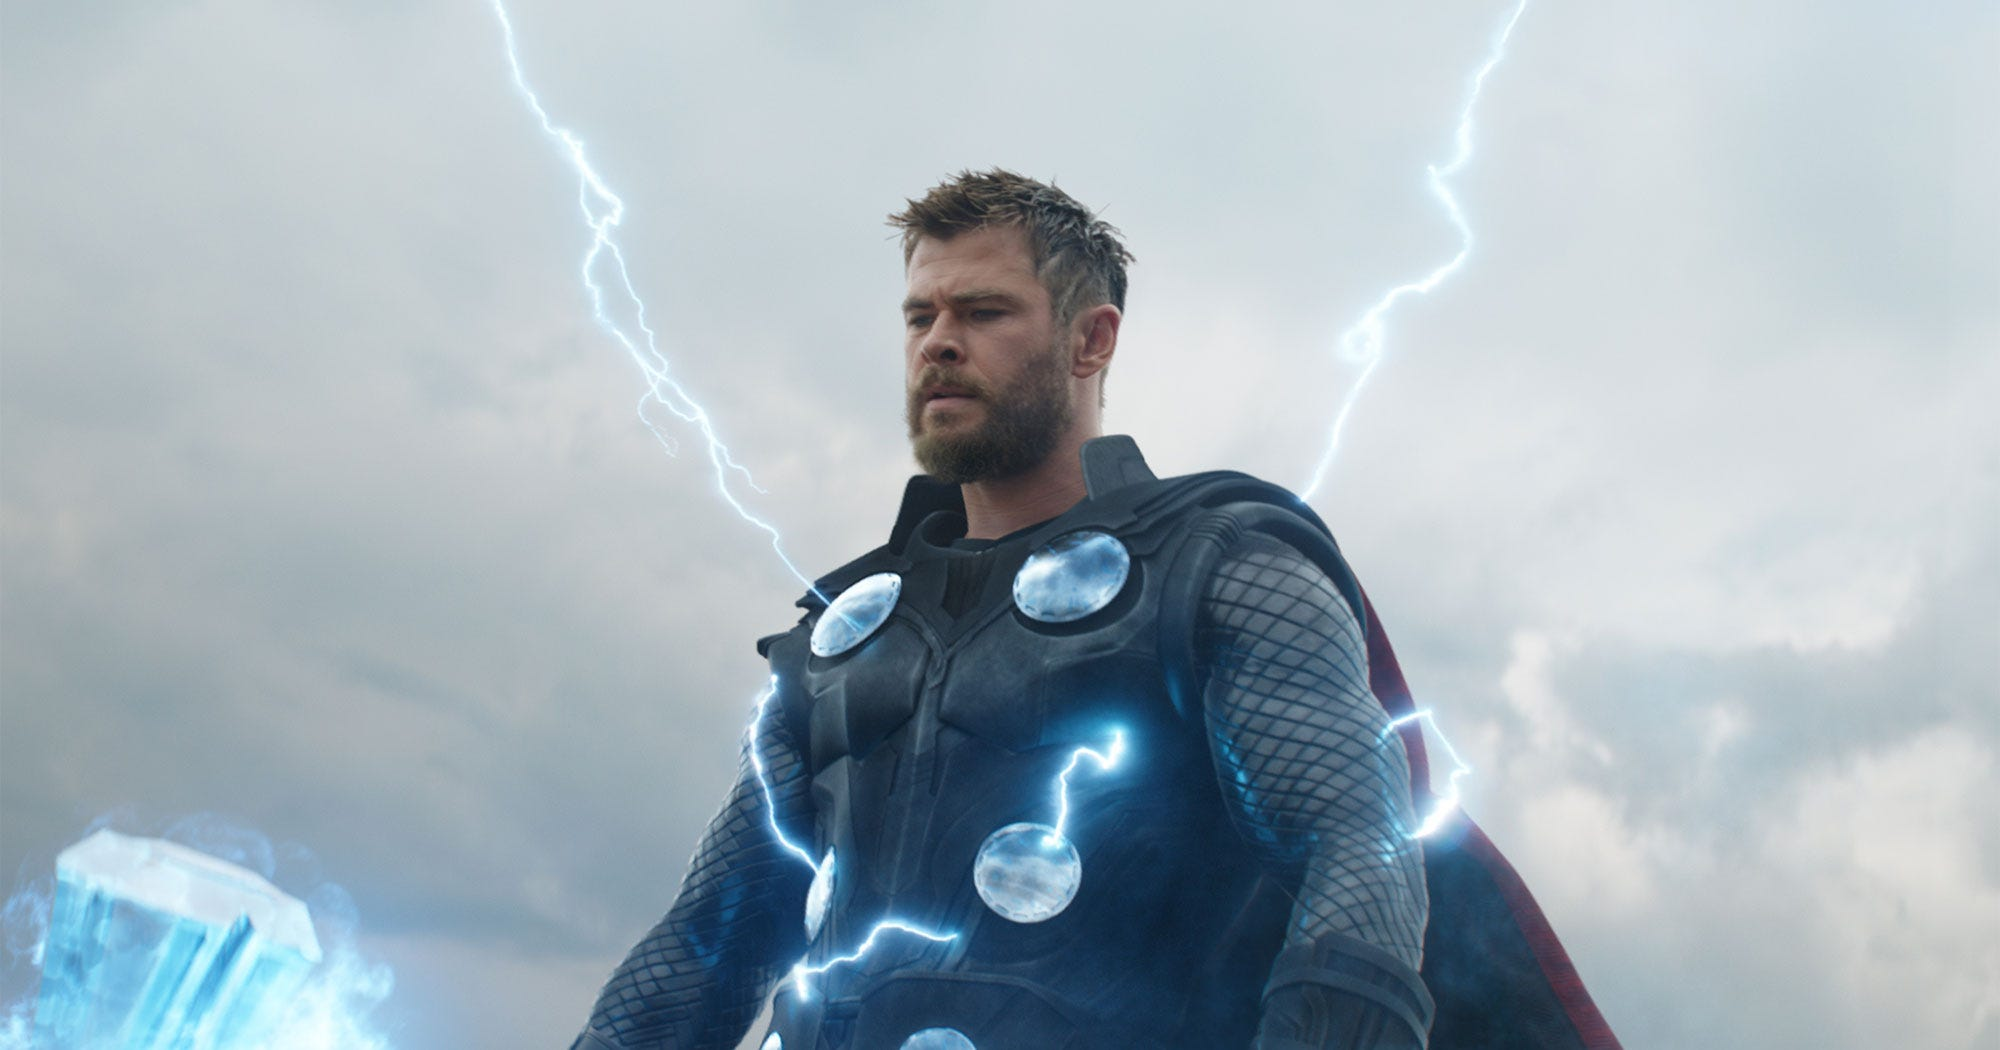 Will Chris Hemsworth Be In Thor 4 Or Guardians 3? on thor beautiful planet, superman's home planet, spock's home planet, thor's home city, thor's home asgard, cartoon thor home planet,